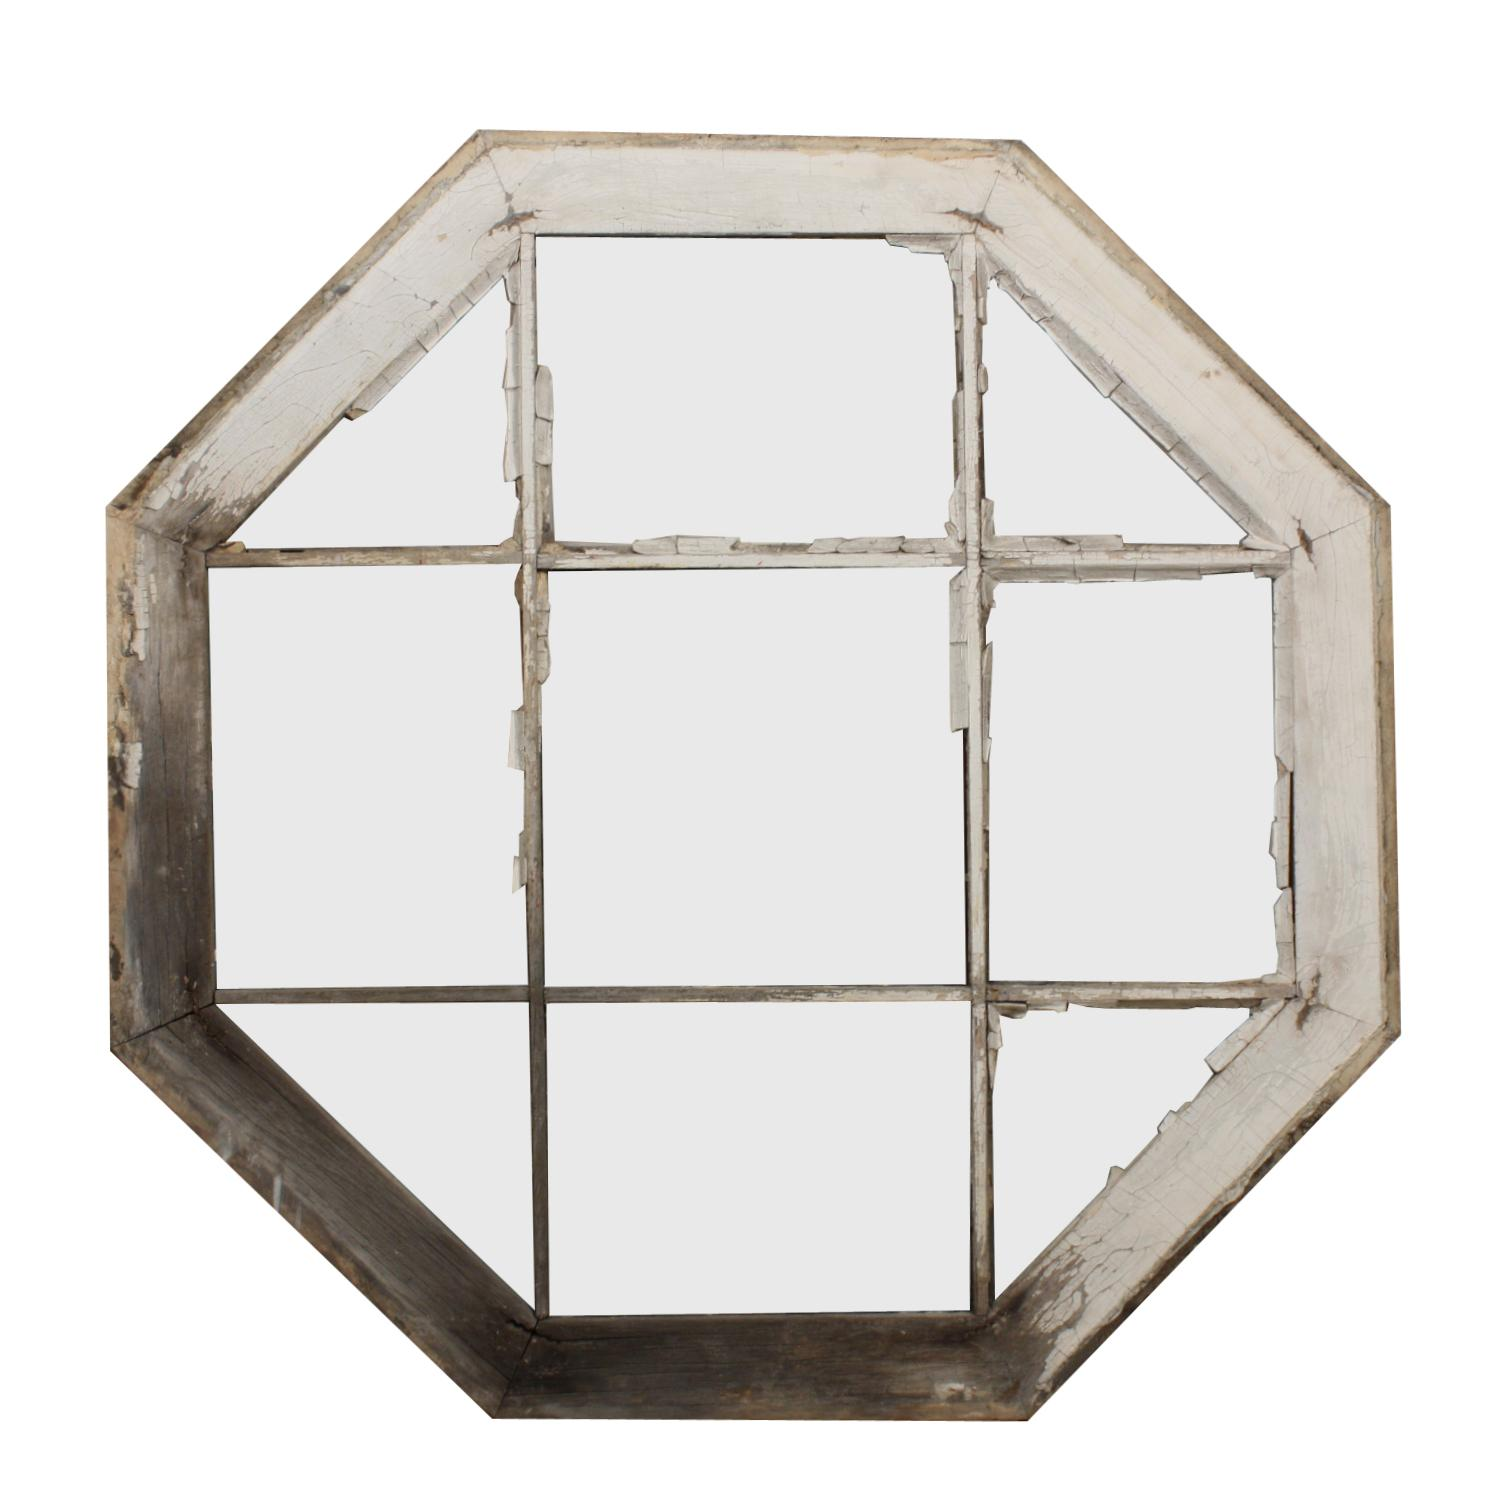 Wood Mullions For Windows : Charming antique octagonal window with wood mullions from